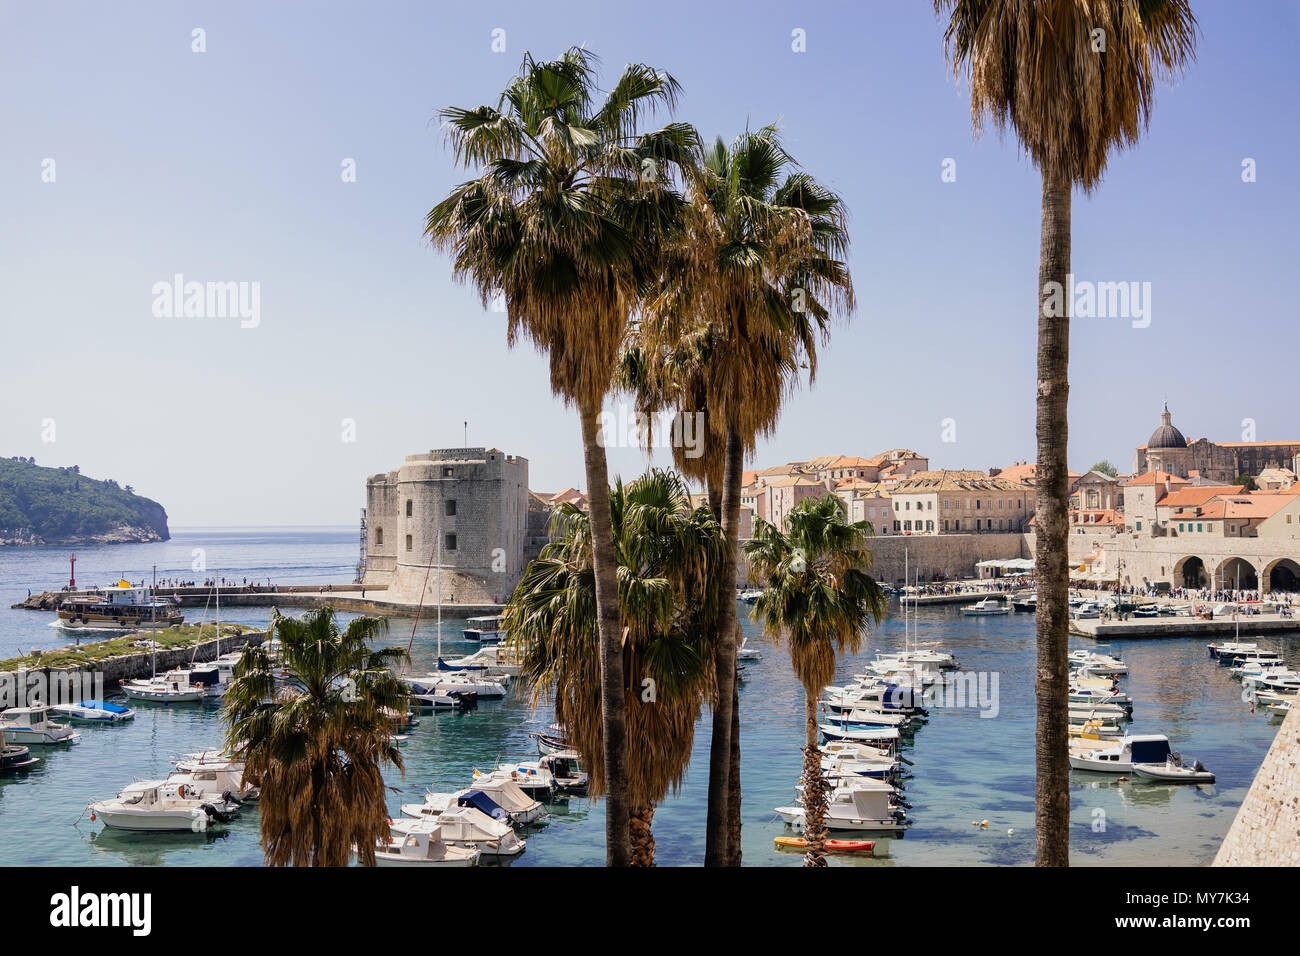 City of Dubrovnik, Croatia - Stock Image